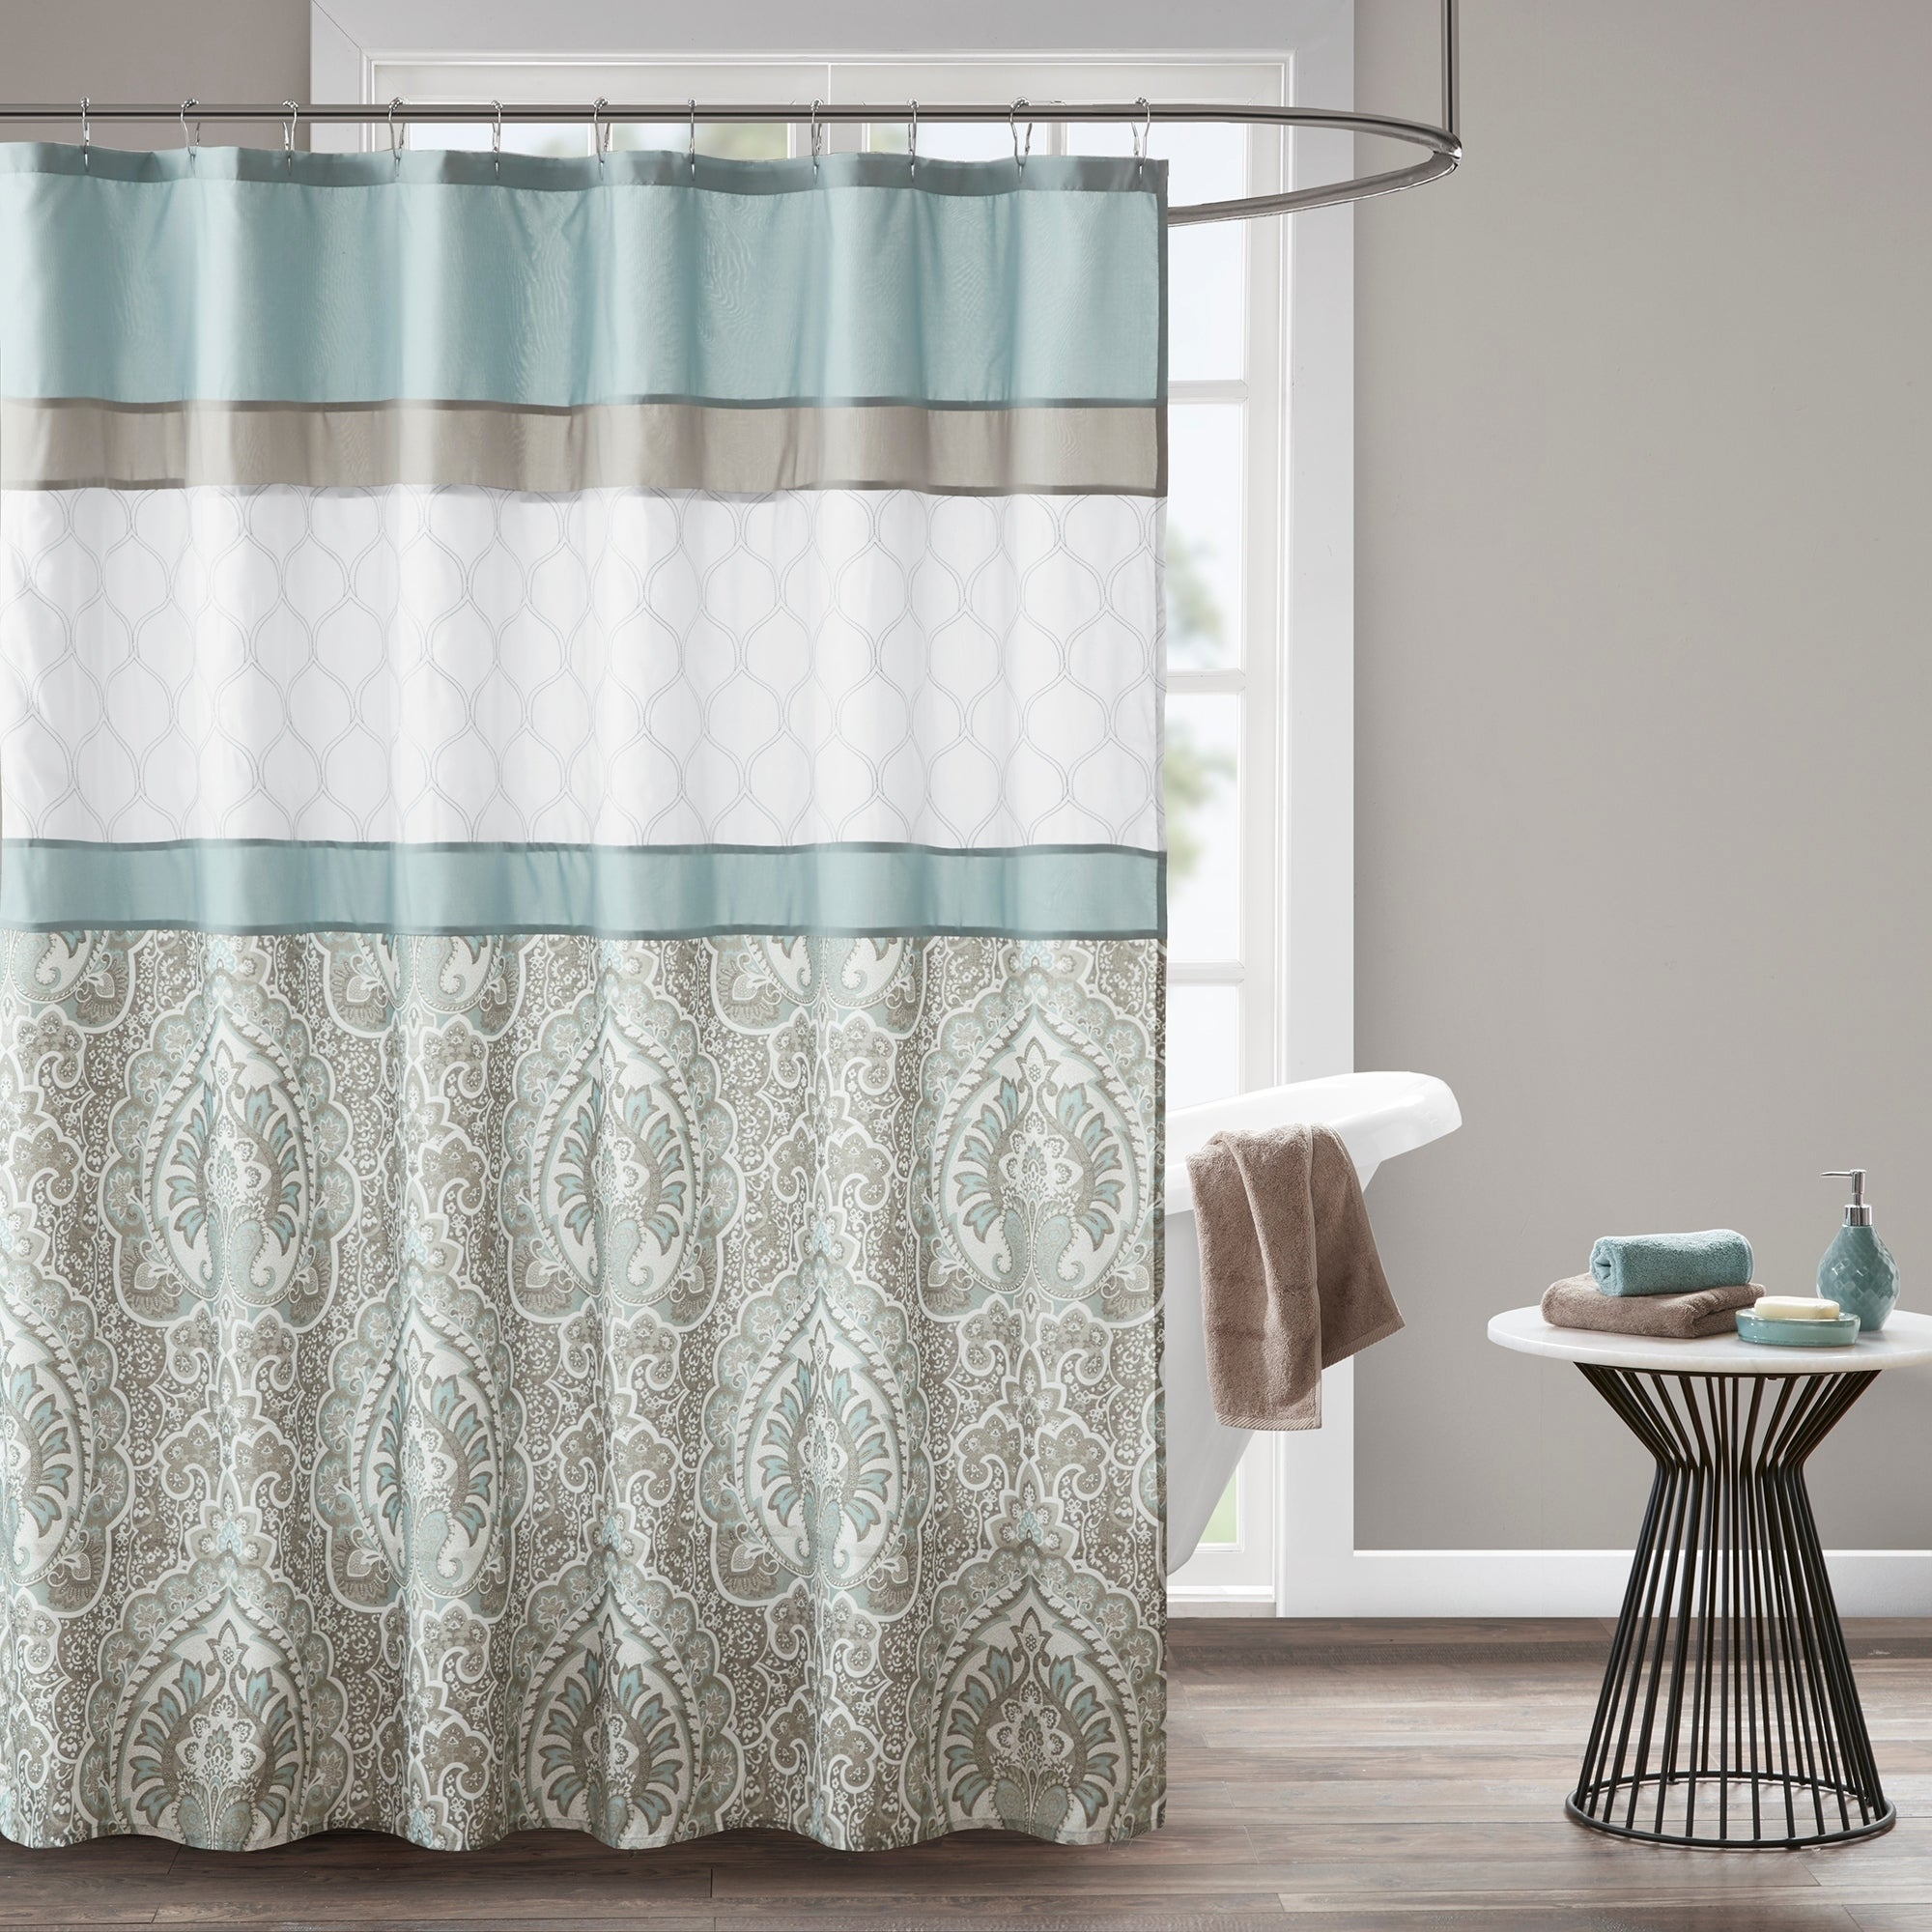 Shop 510 Design Josefina Blue Printed And Embroidered Shower Curtain